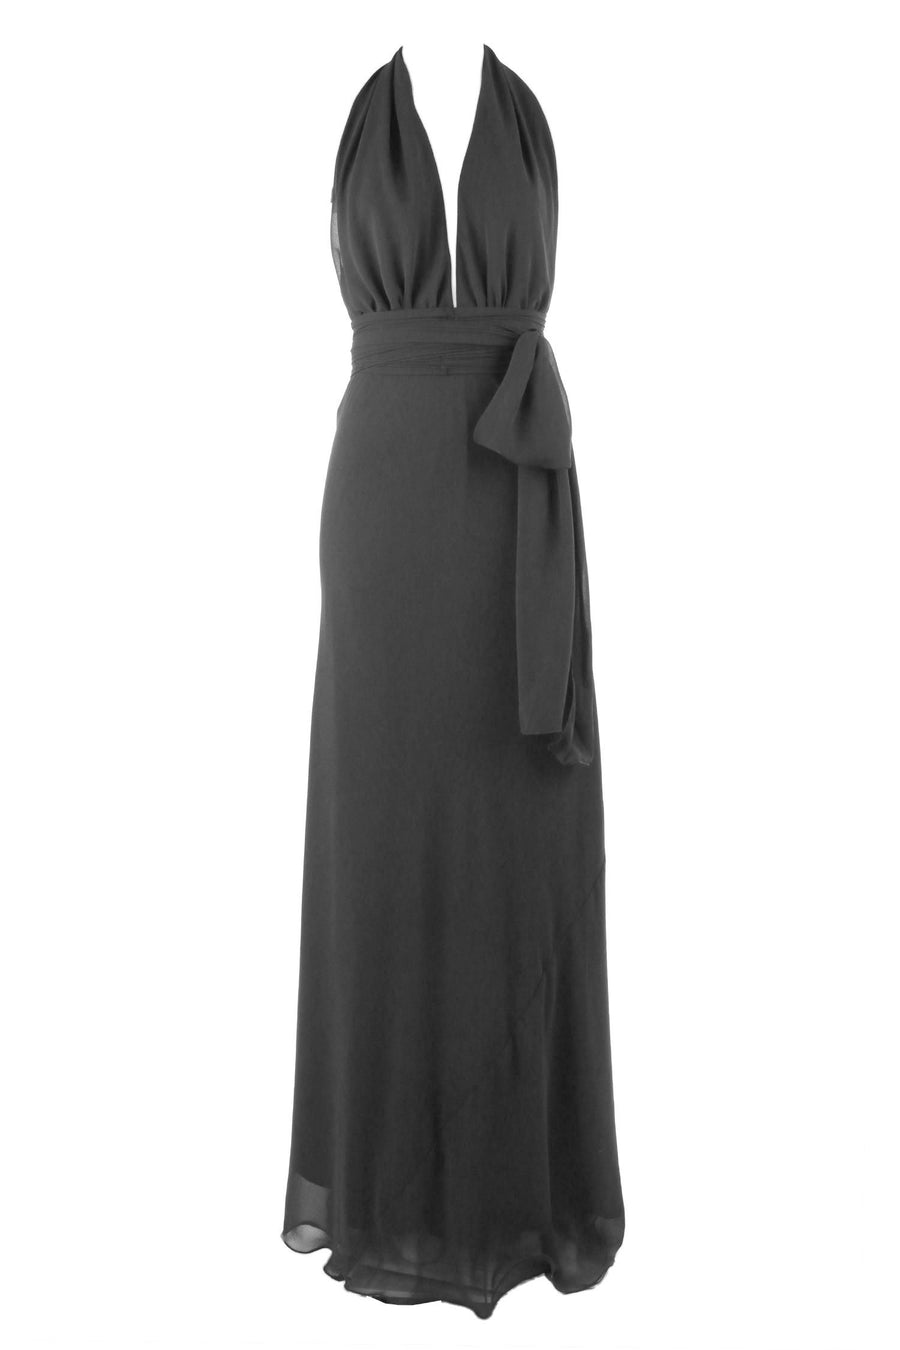 cameo-in-charcoal-poly-georgette-by-lucy-laurita